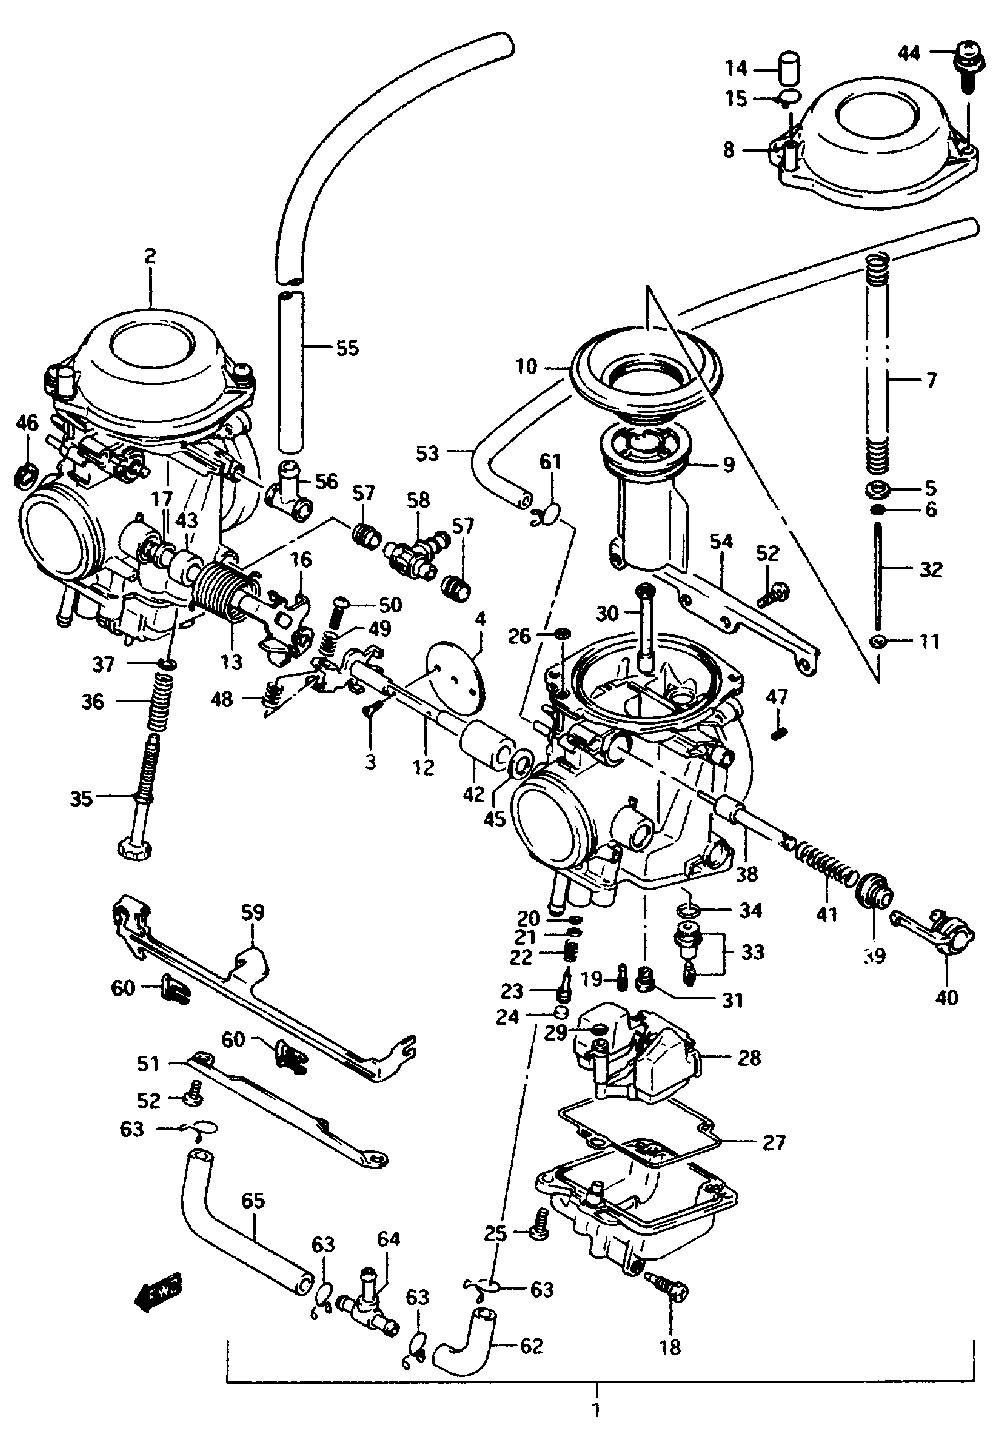 Bs Carb Diagram Electrical Work Wiring Zenith Carburetor Parts Mikuni Car Interior Design Protein Carburetors Diagrams